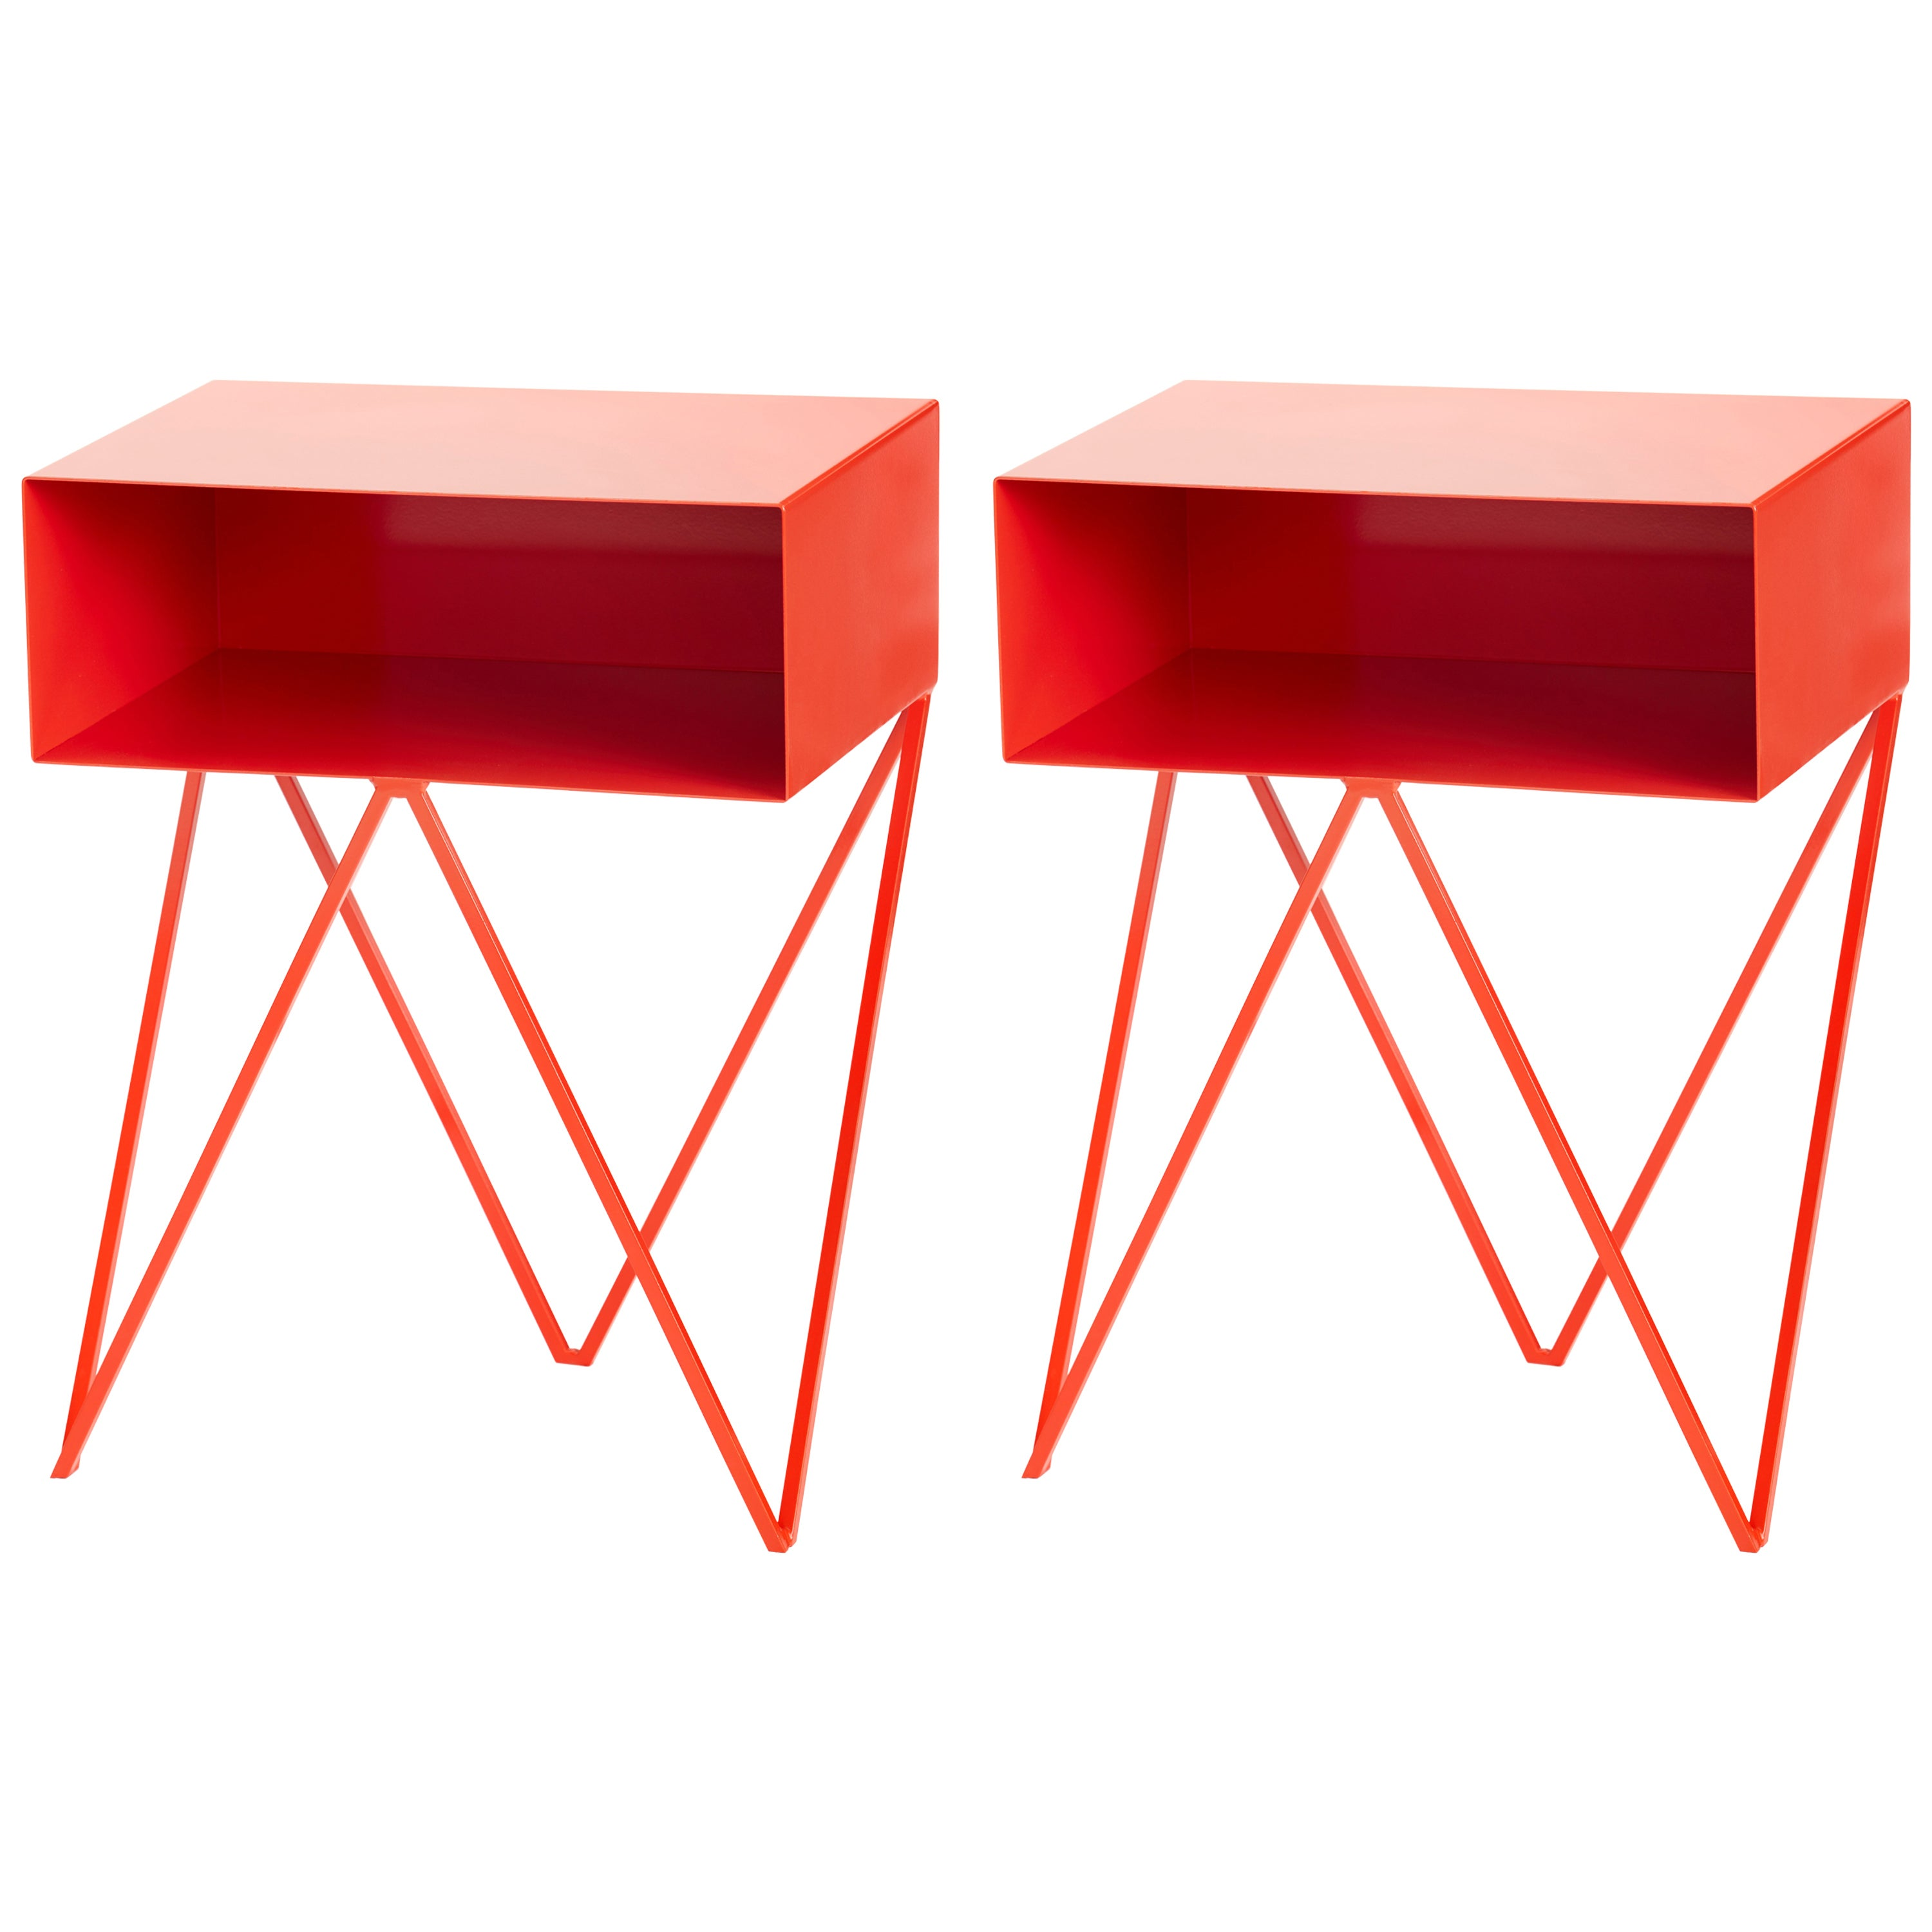 Pair of Red Powder Coated Steel Robot Bedside Tables